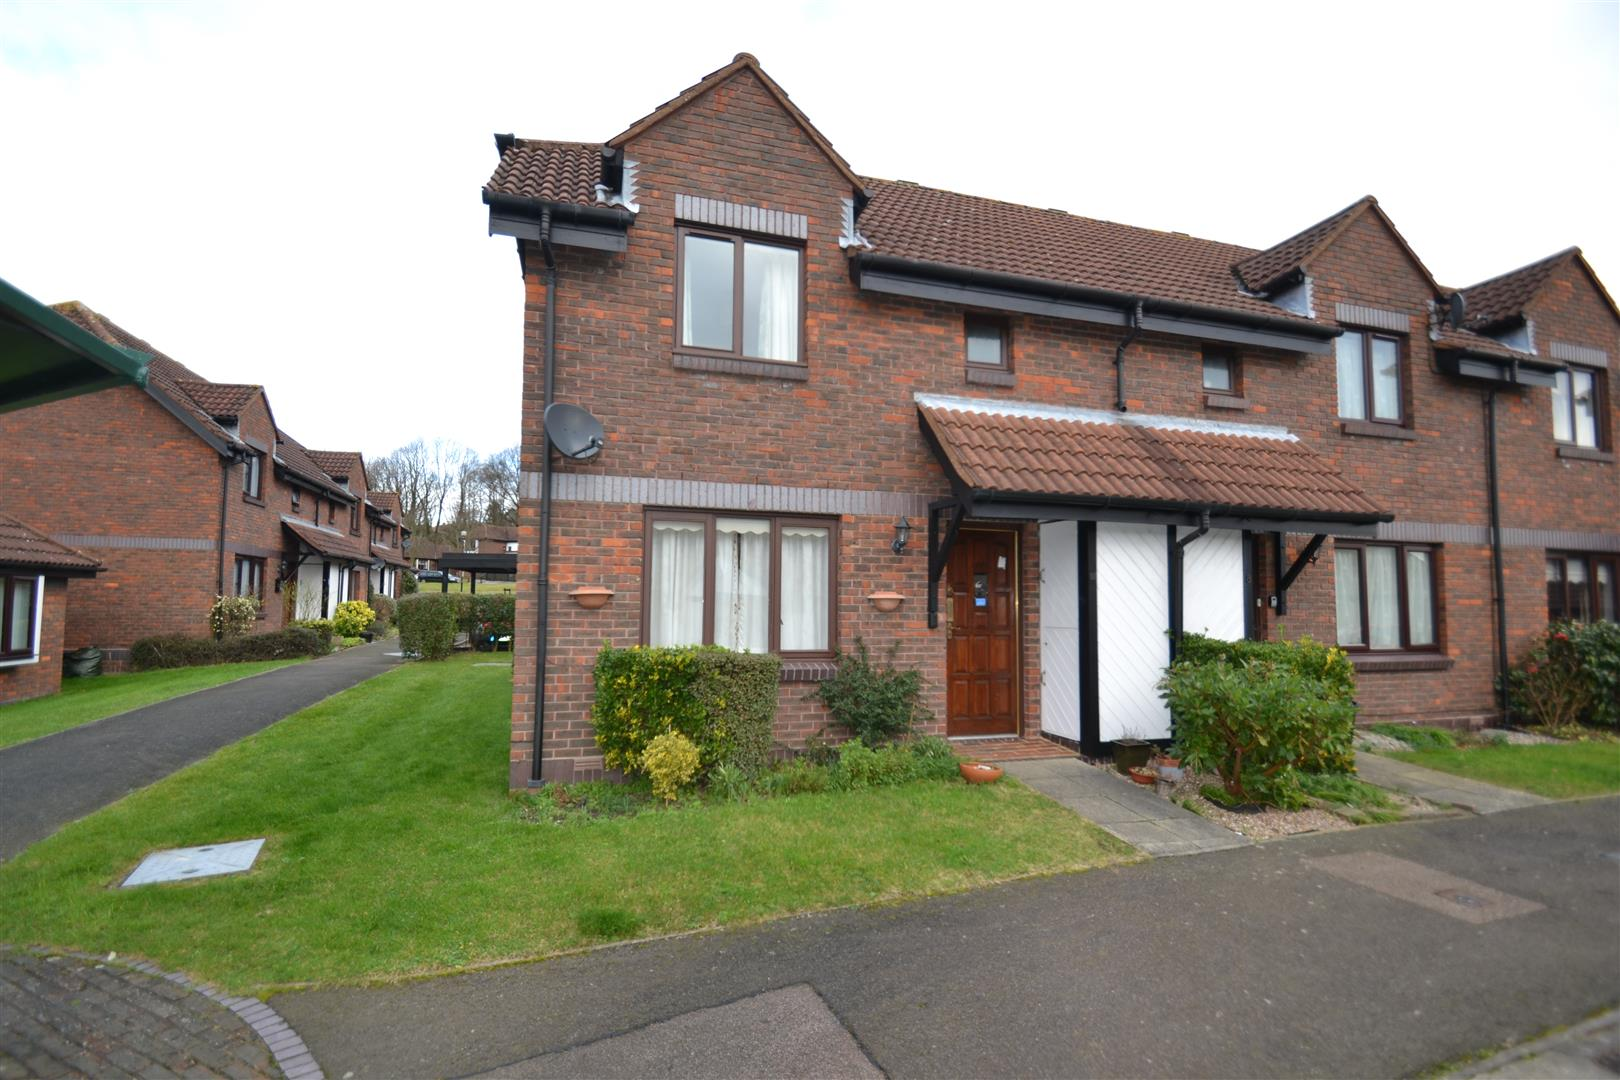 2 Bedrooms End Of Terrace House for sale in Willow Walk, Redhill